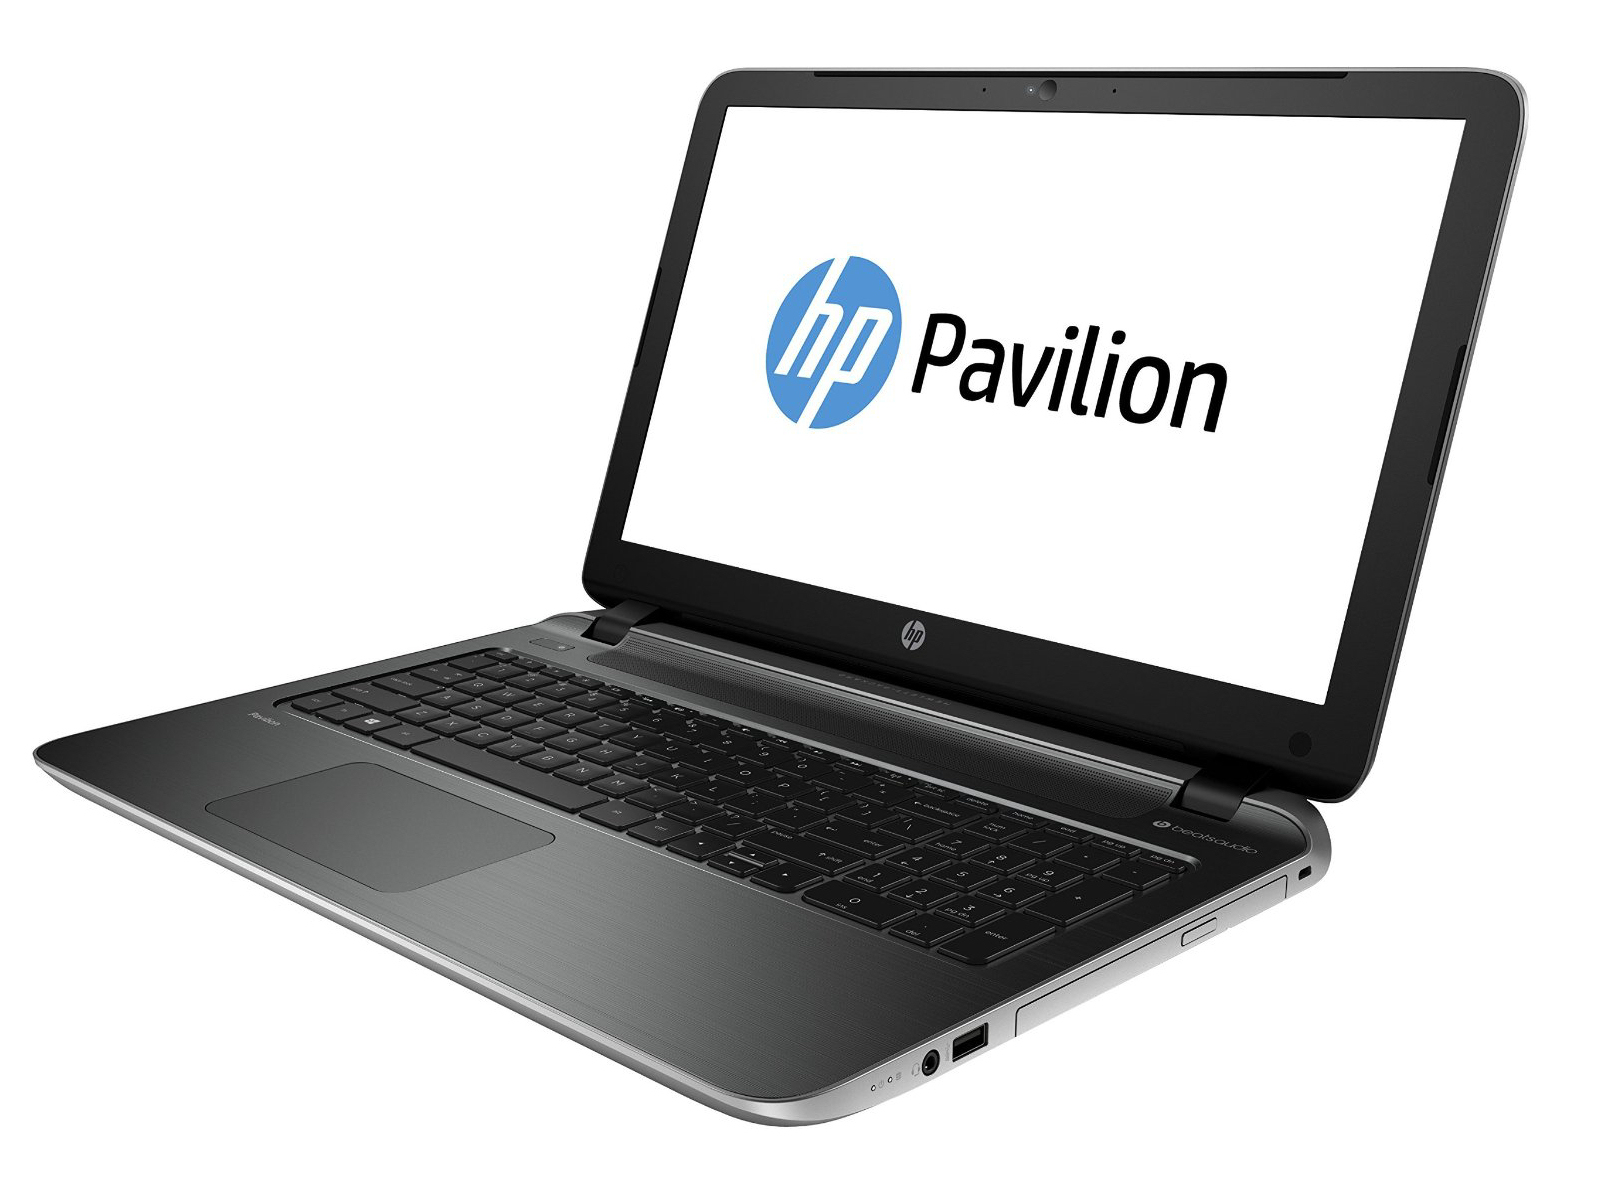 hp pavilion 15 p151ng notebook review. Black Bedroom Furniture Sets. Home Design Ideas